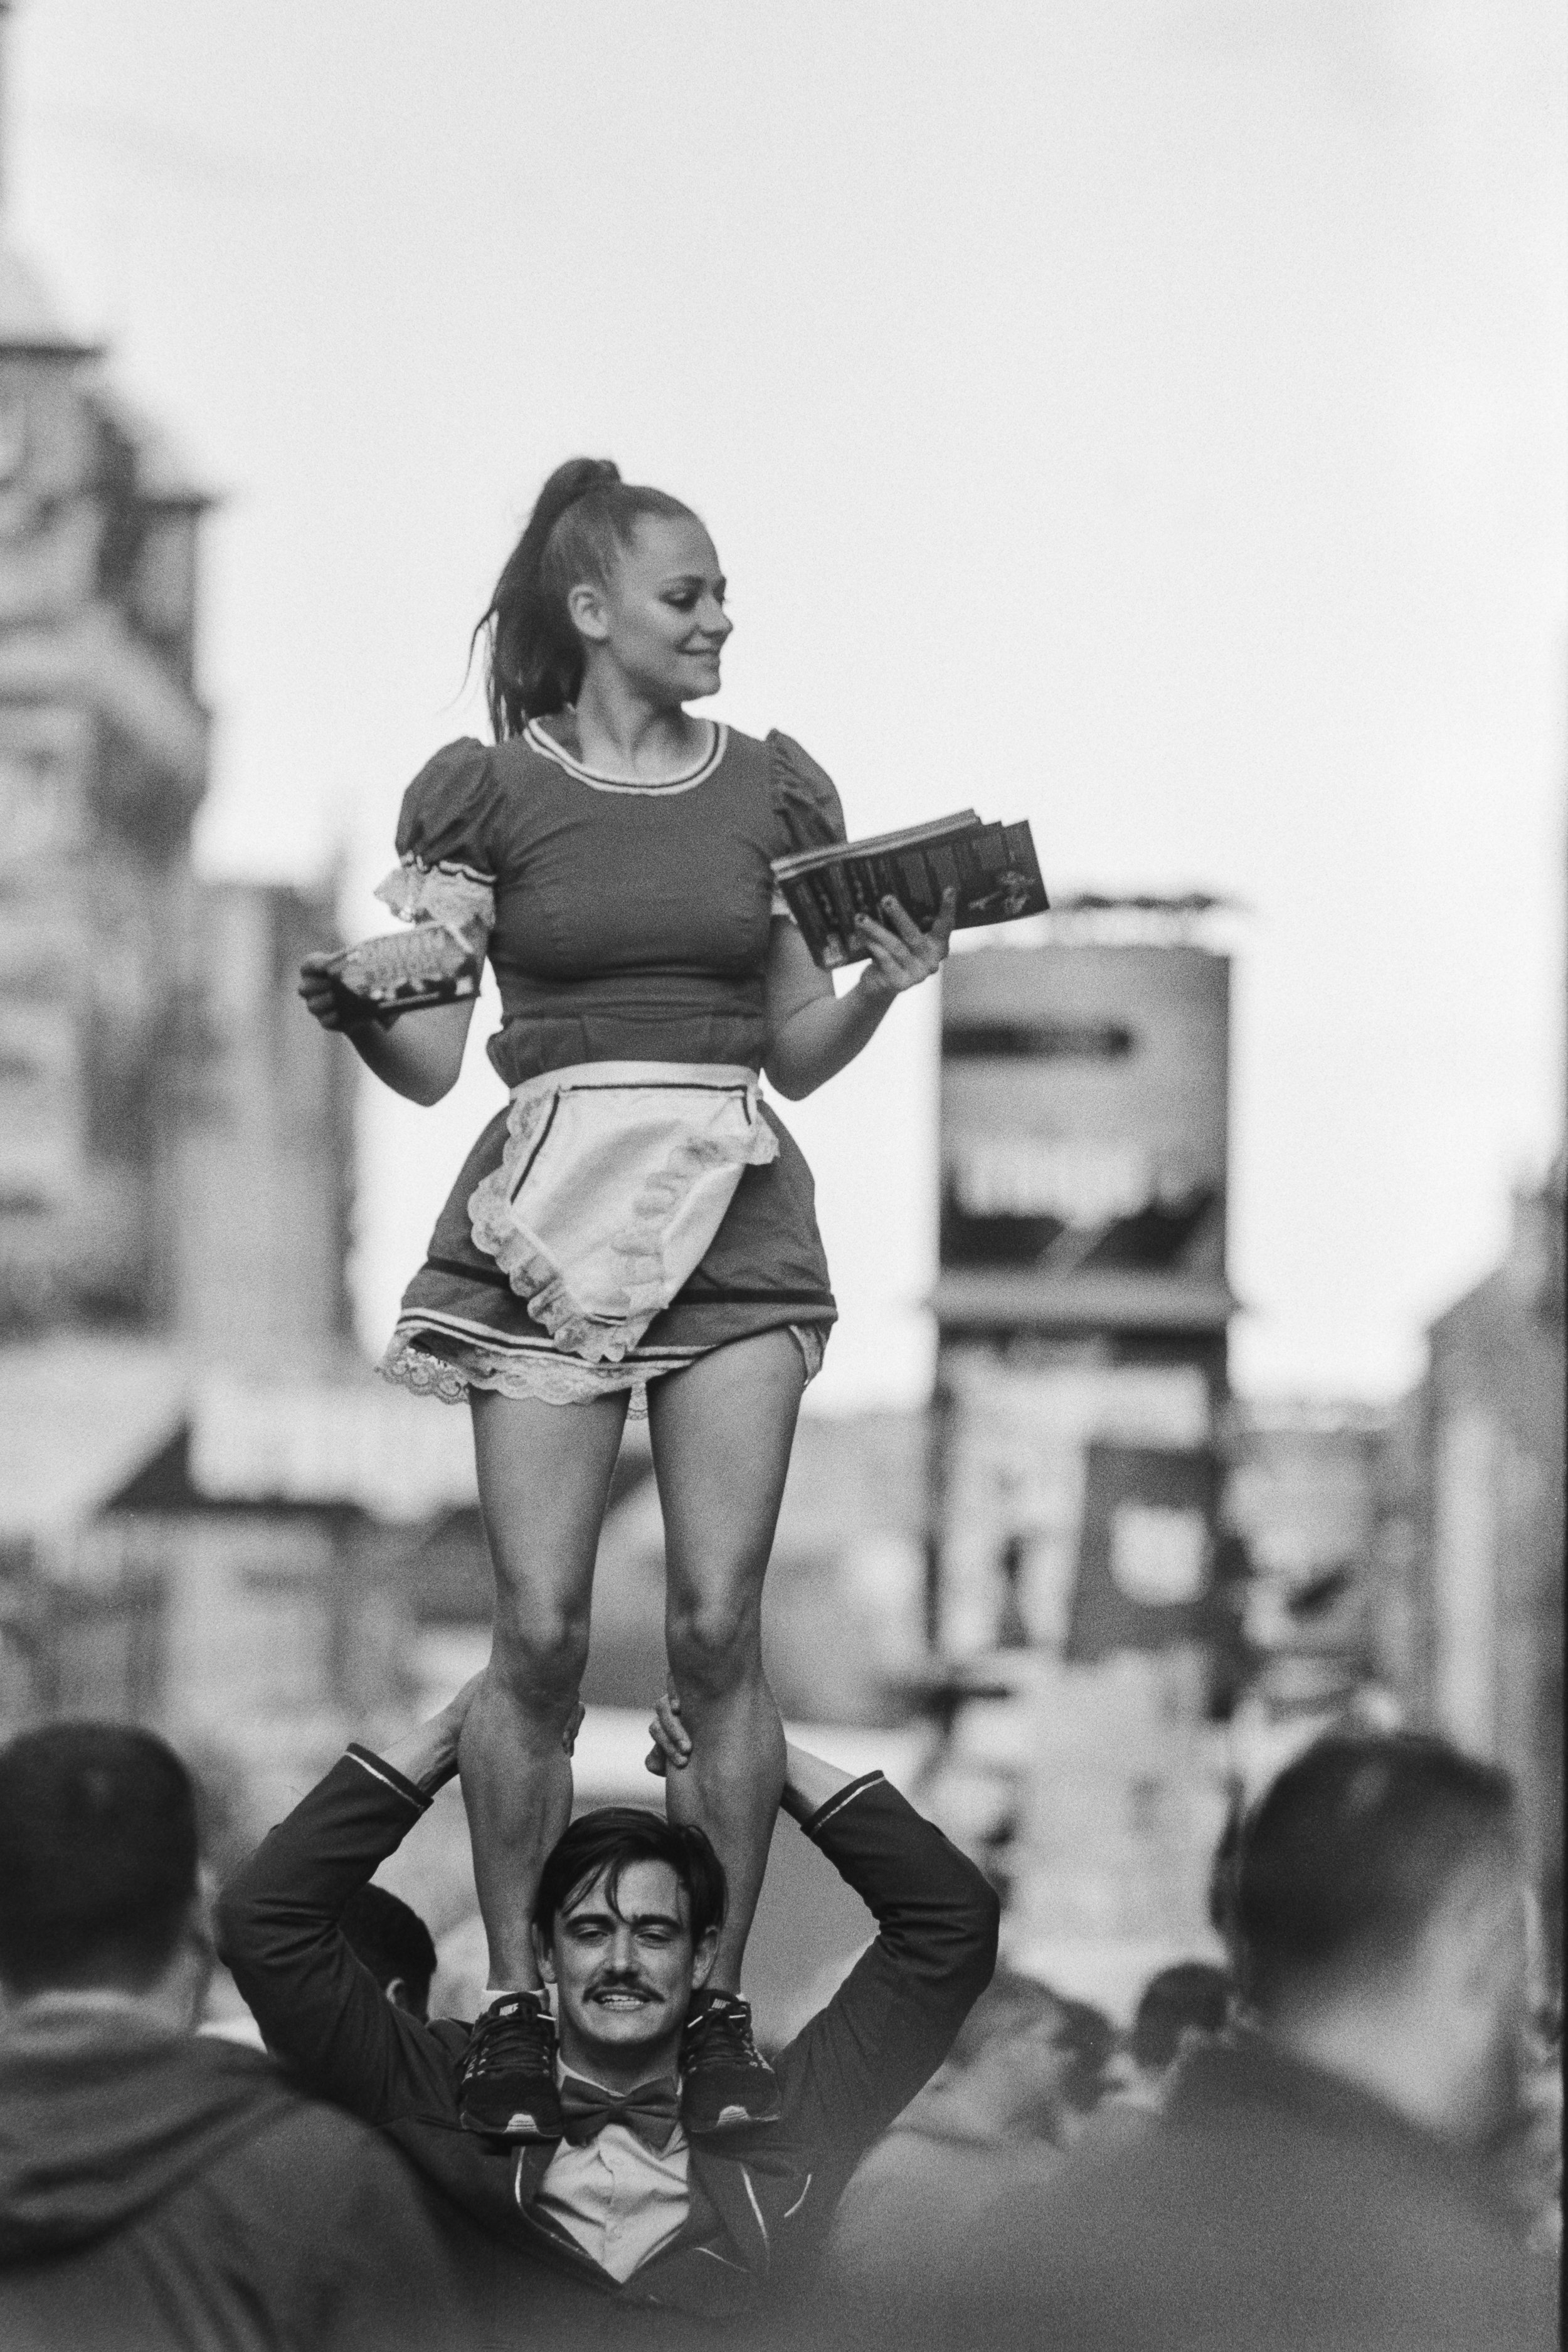 It's difficult enough to make it through the crowds on the Mile without having to carry a whole other person on your shoulders.